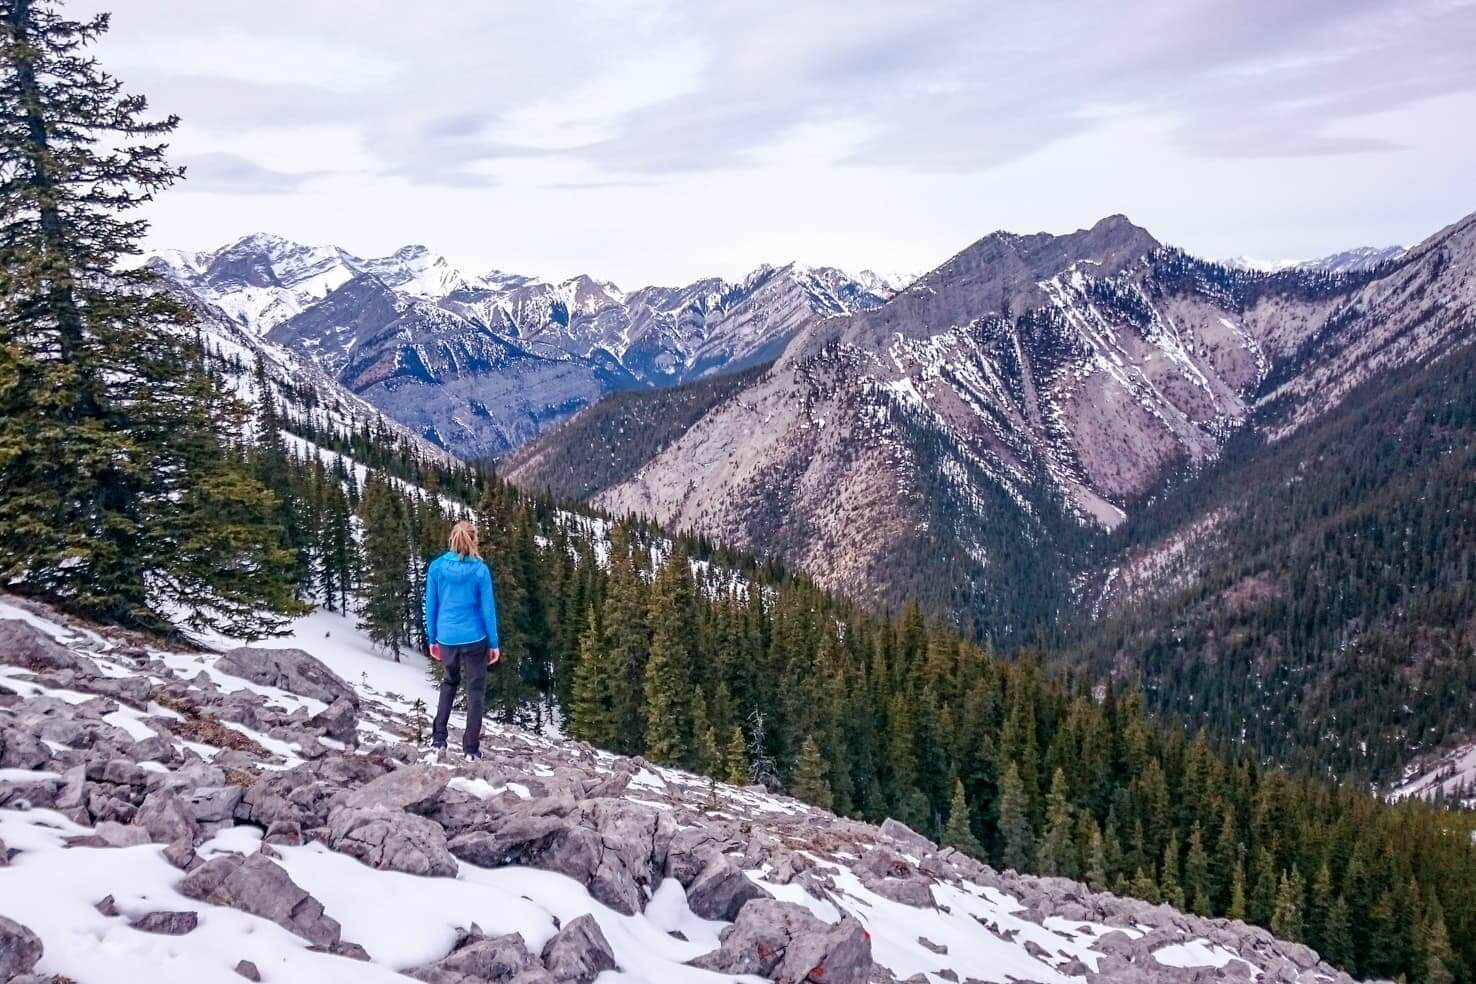 100 best things to do in Banff National Park, Canada - Visit Kananaskis Country